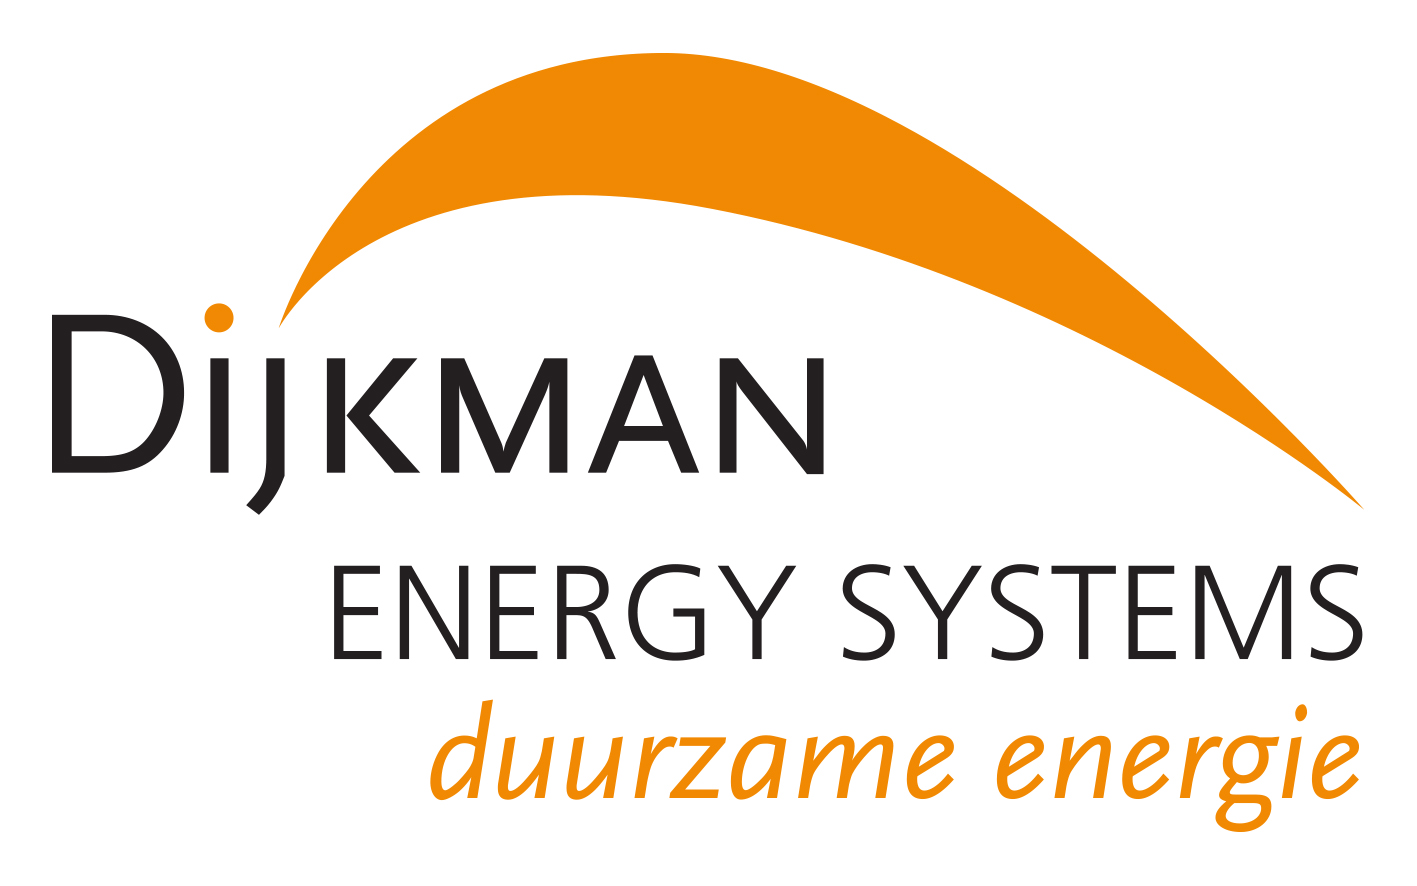 Dijkman Energy Systems